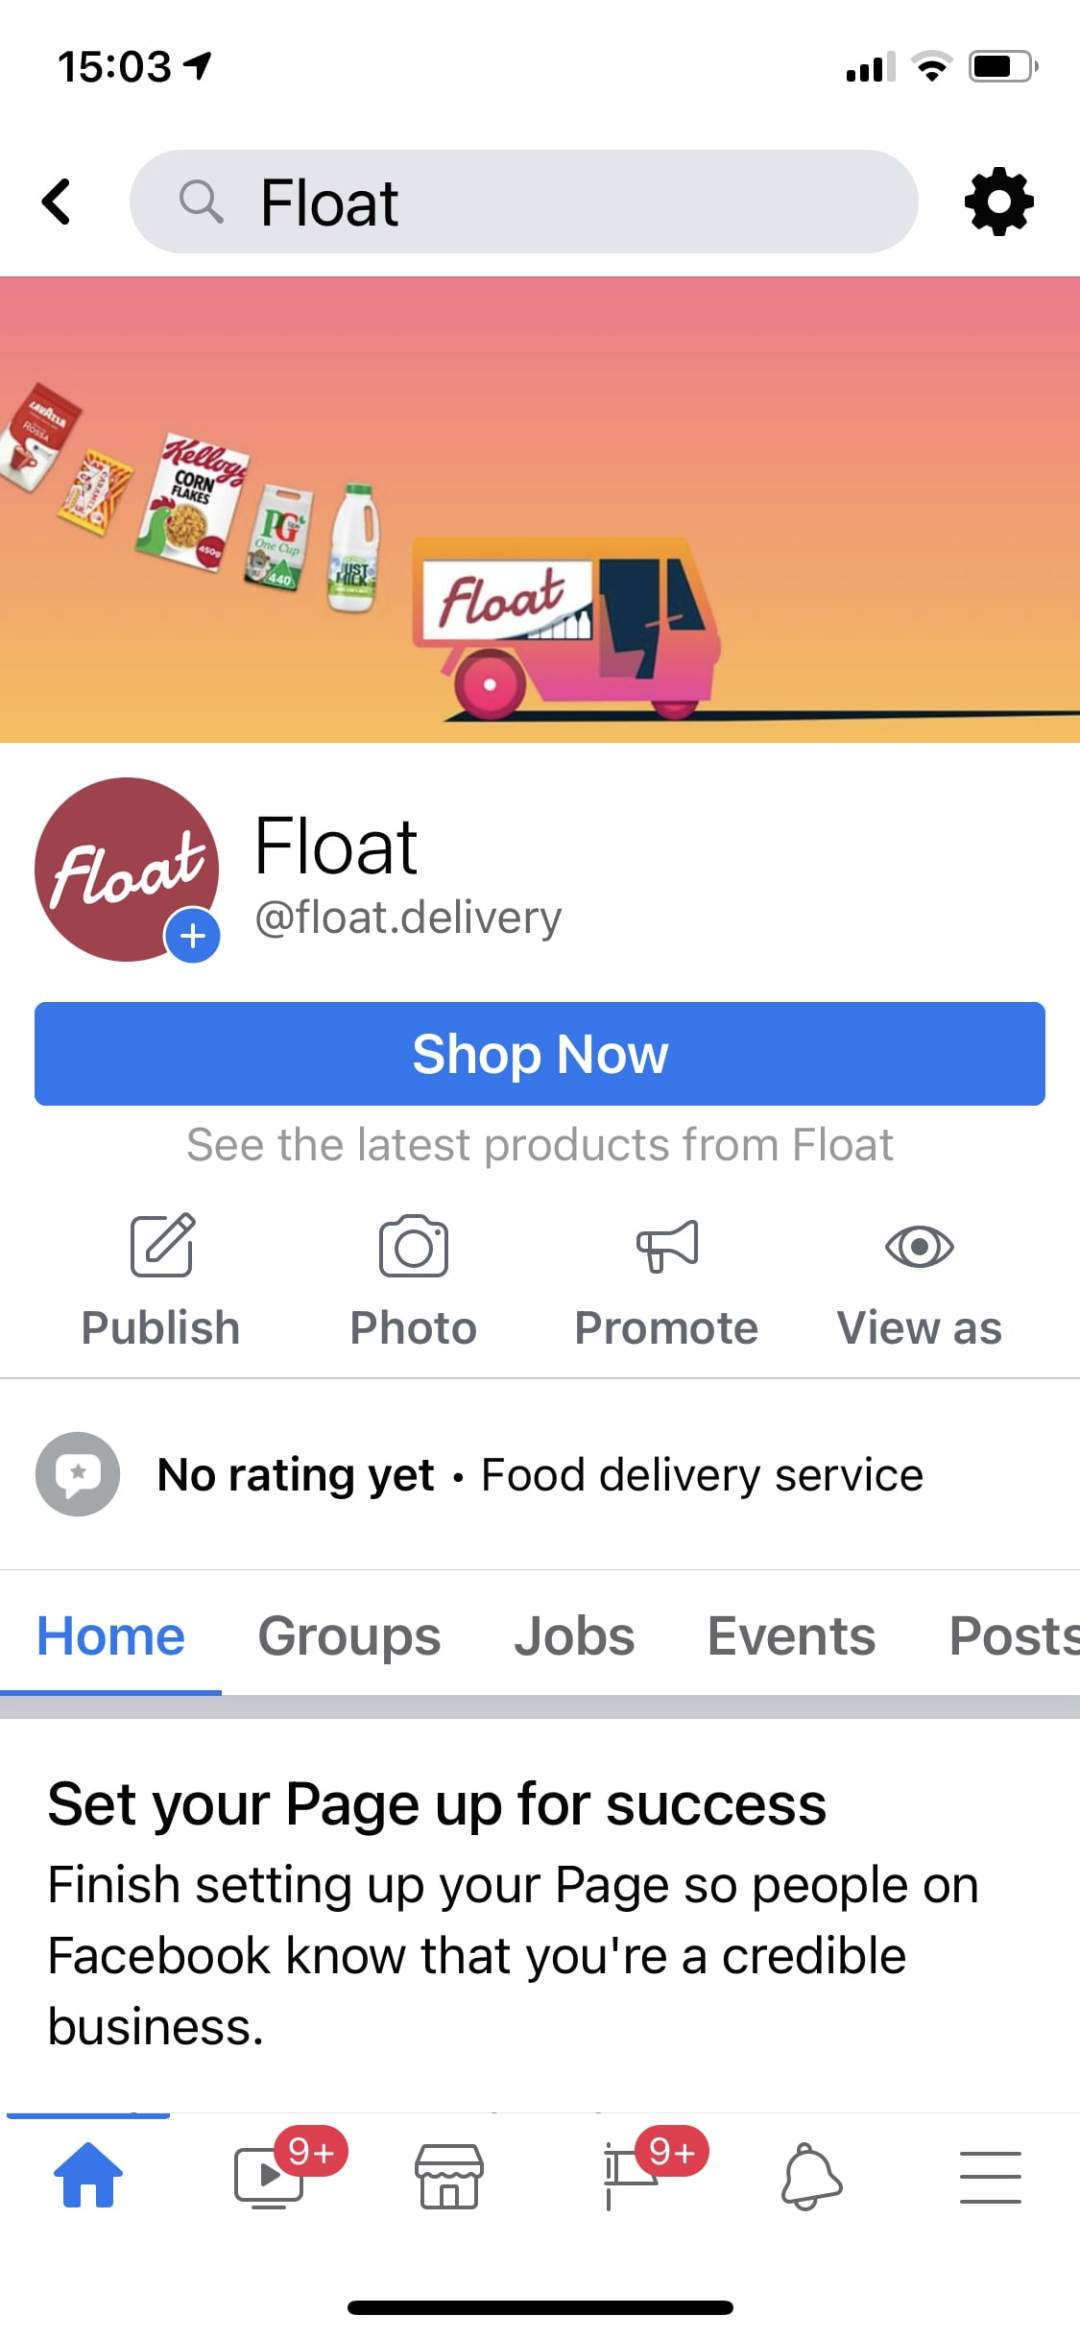 Float on Facebook